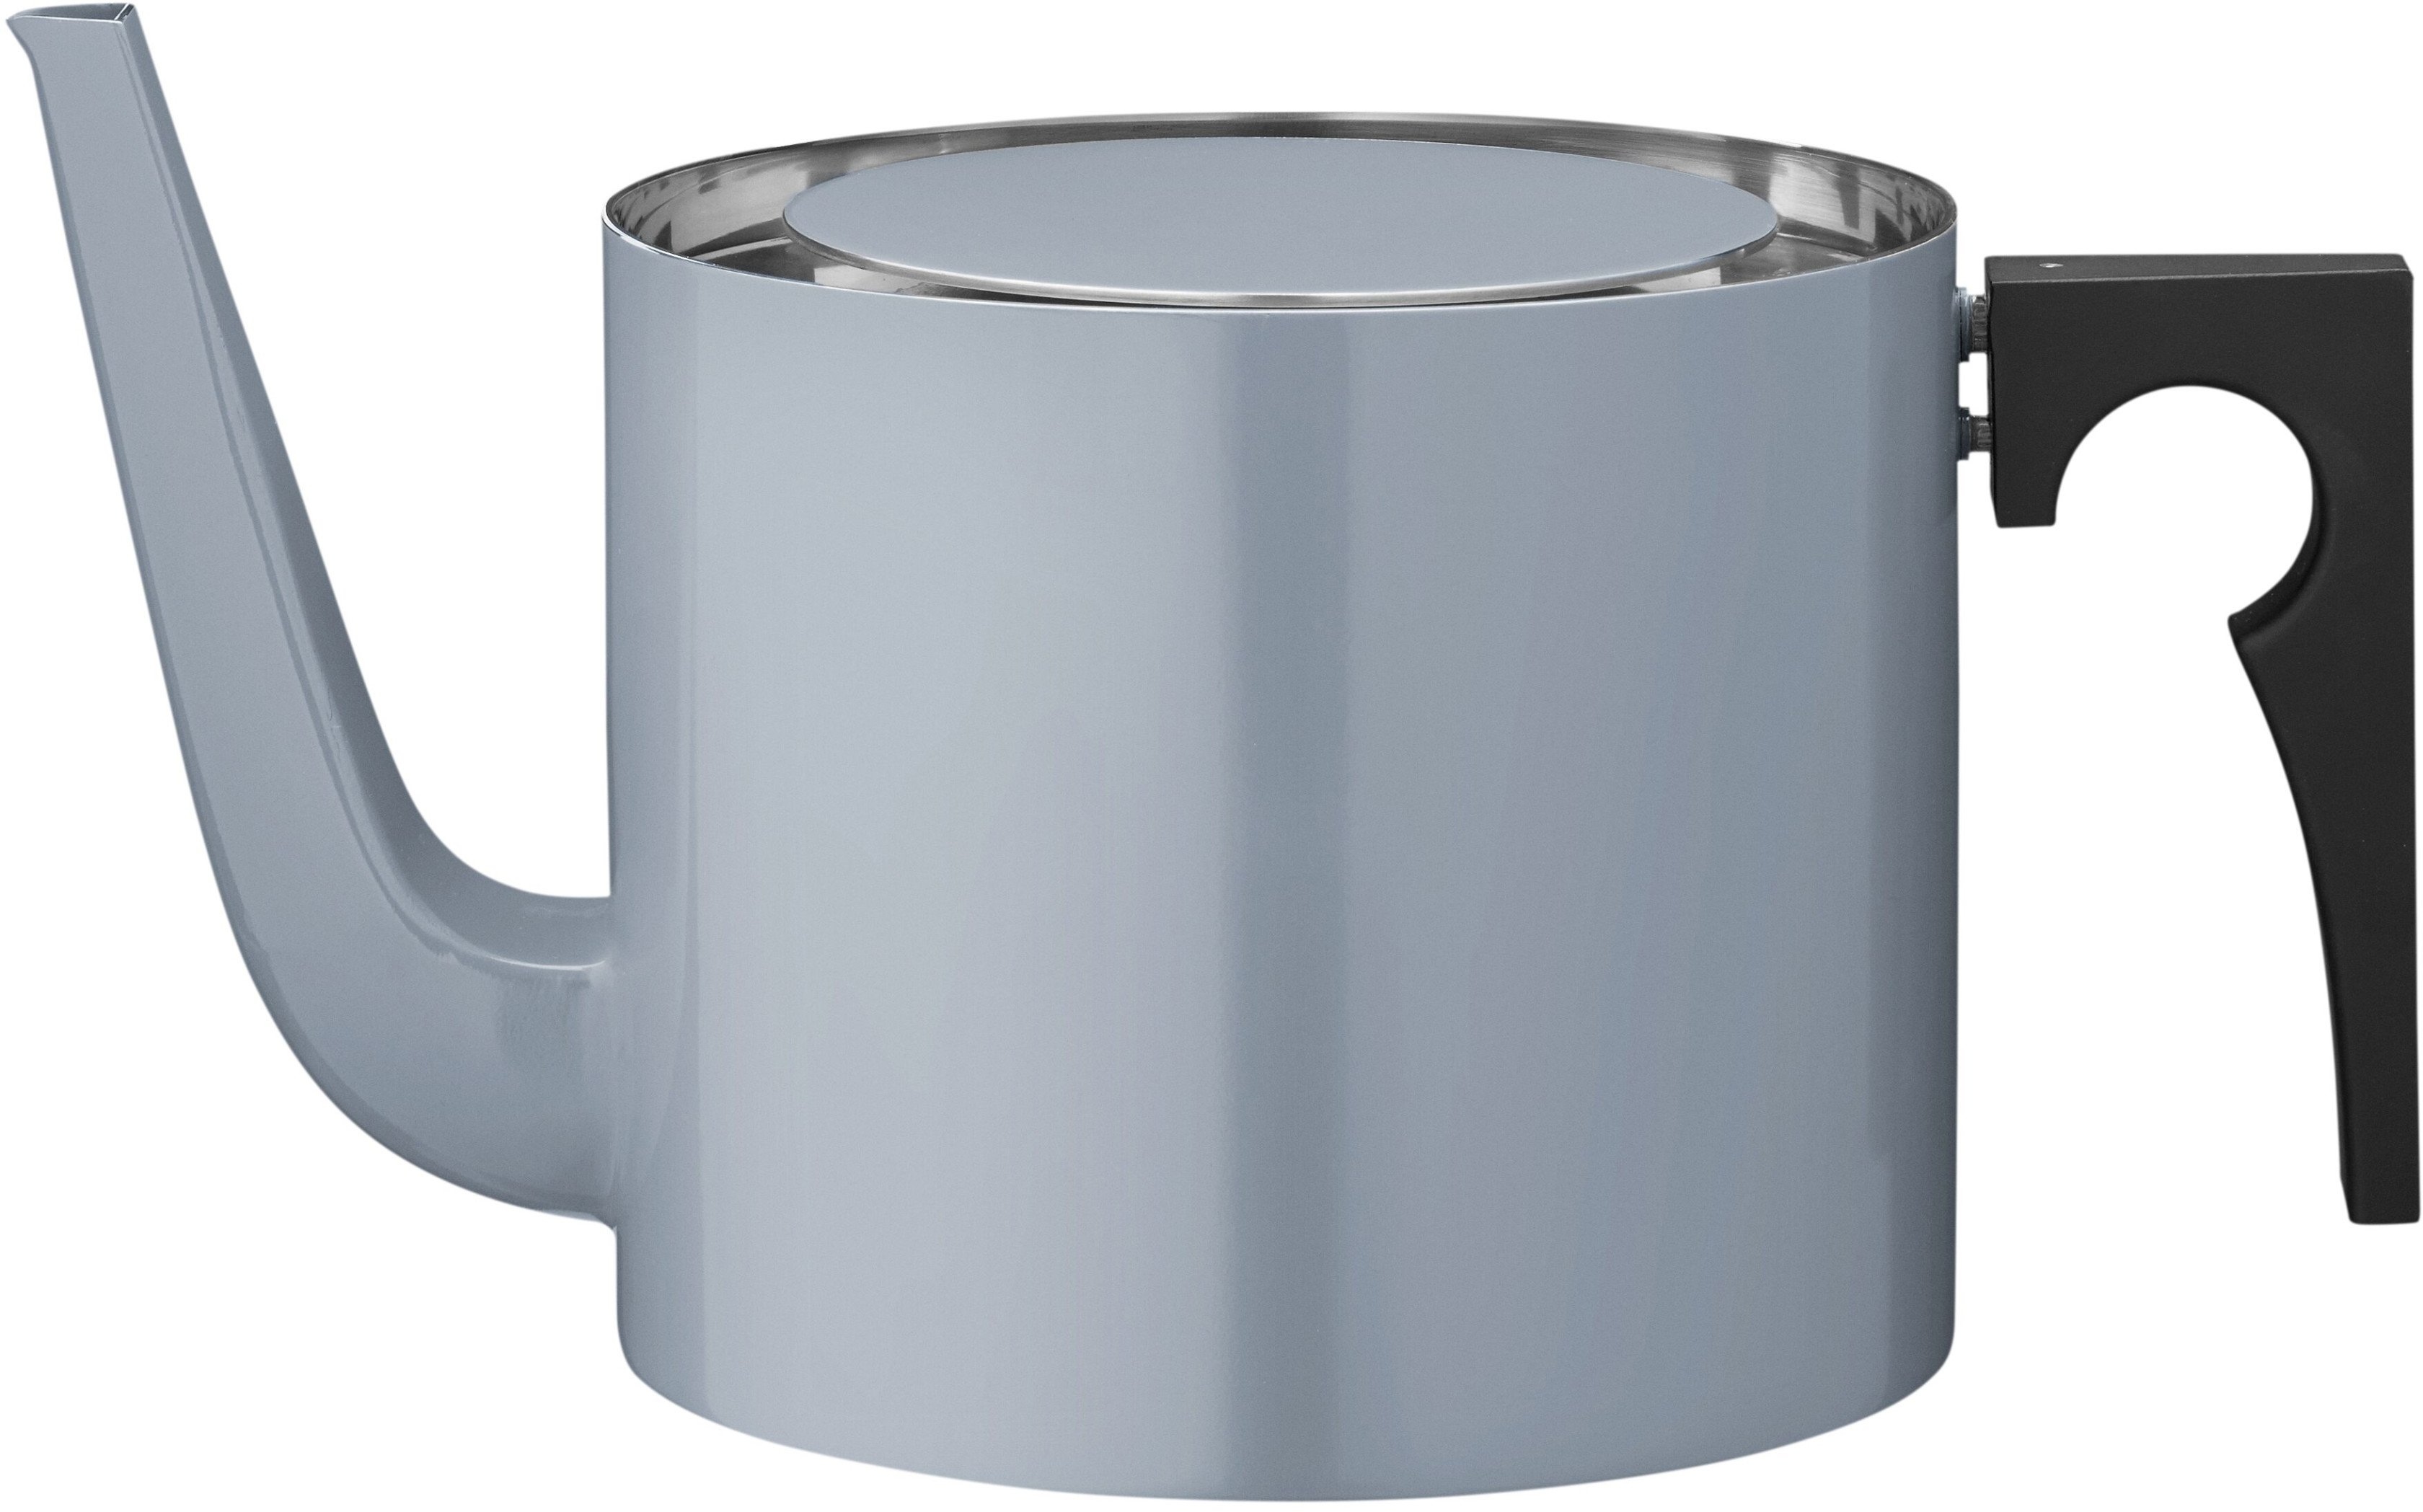 Cylinda-line 50th Anniversary Tea Pot 1,25 L Smoke Blue by A. Jacobsen for Stelton